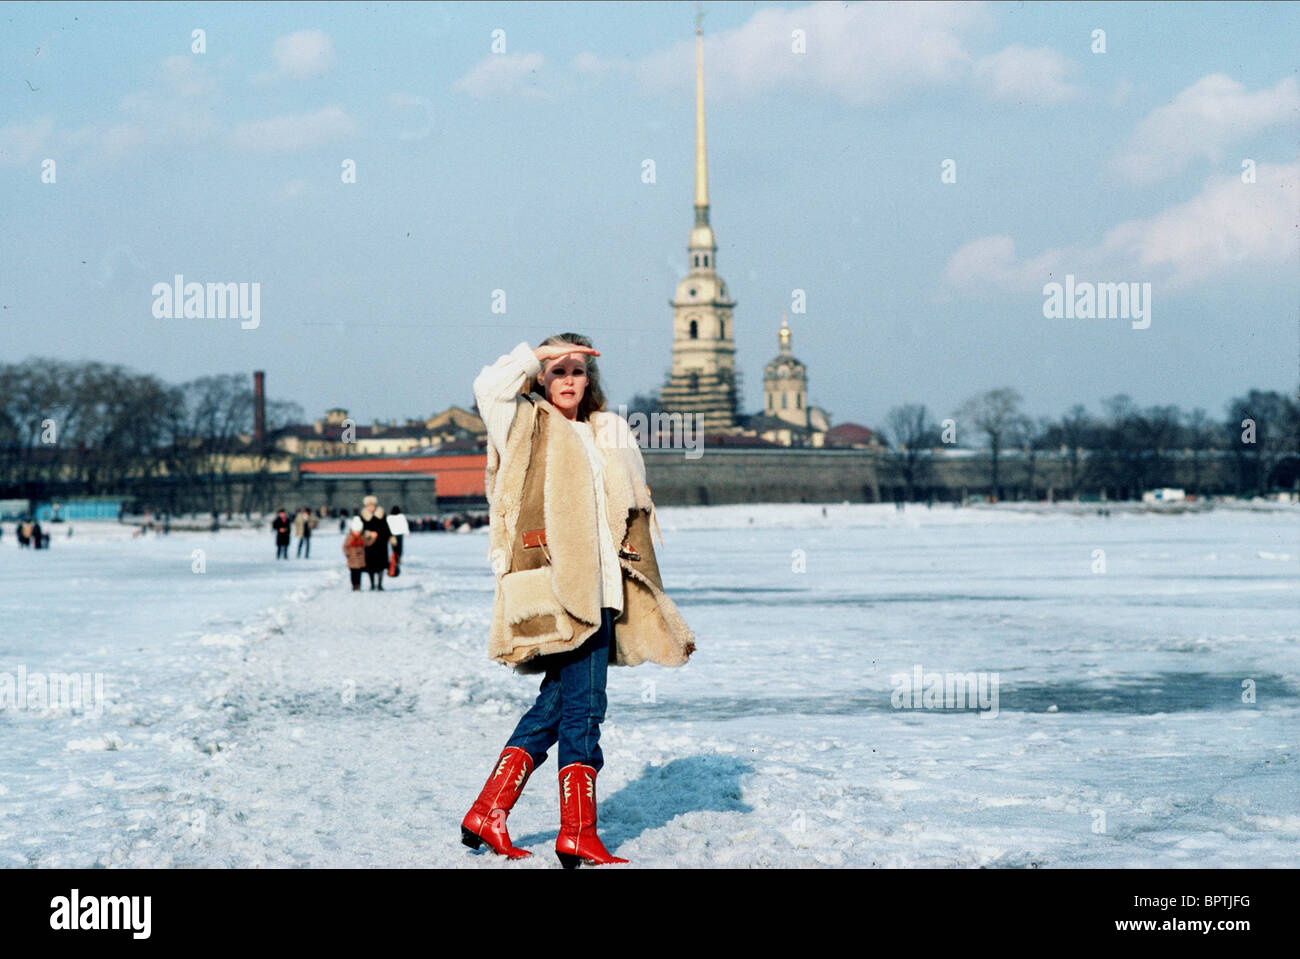 URSULA ANDRESS OUTSIDE PETER THE GREAT FORTRESS & ST. PETERSBURG USSR ST PETERSBURG USSR (1986) - Stock Image